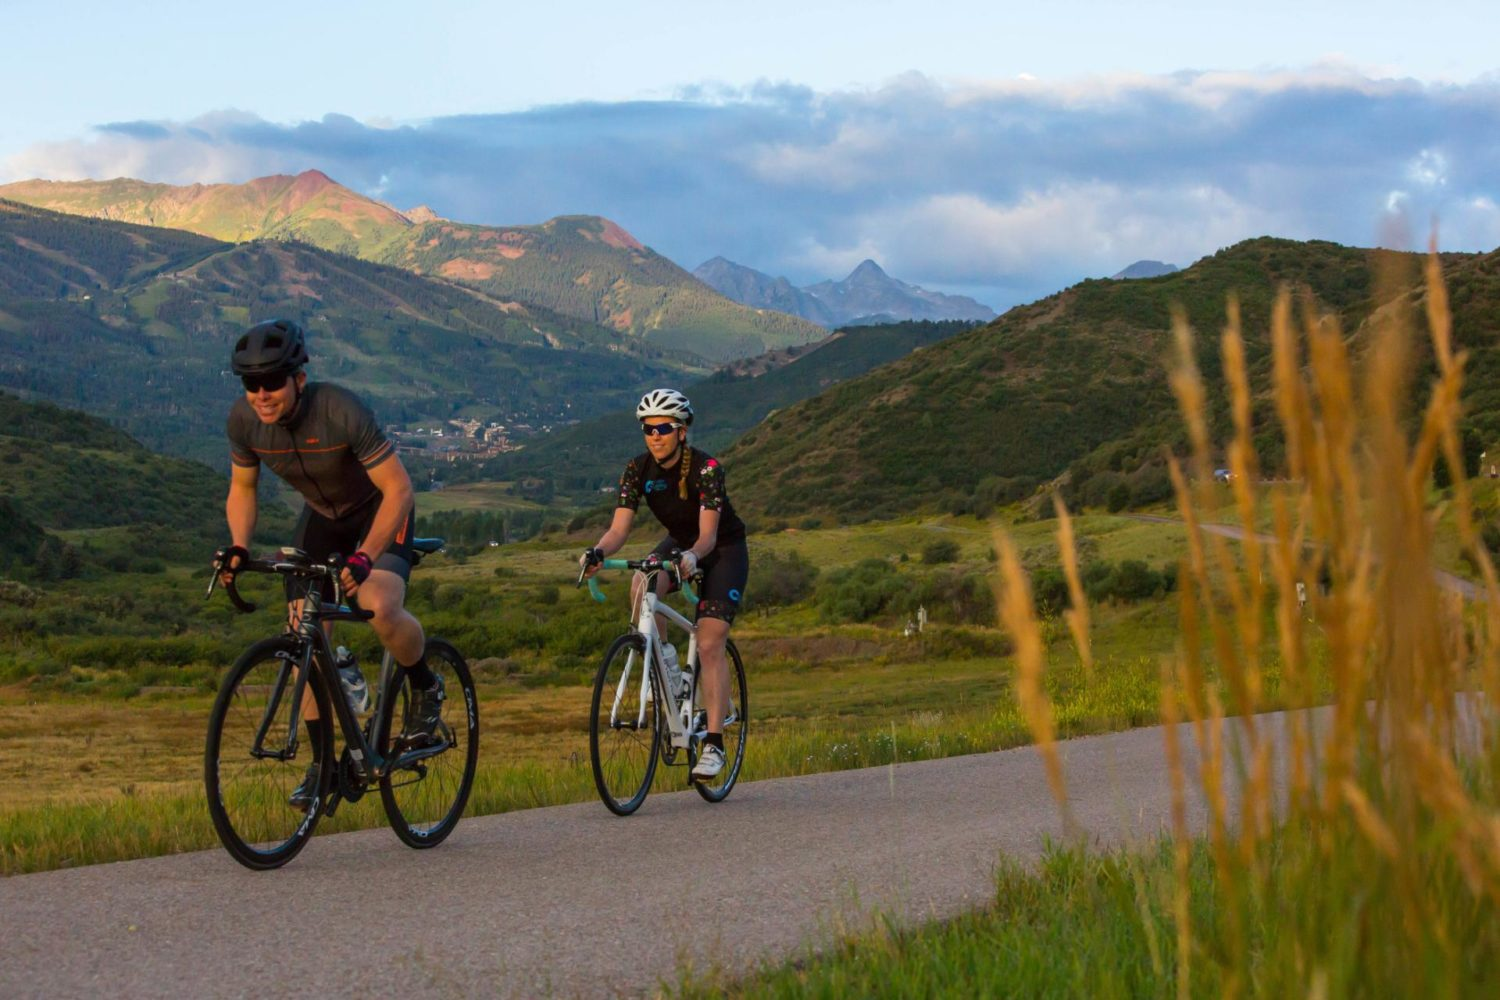 Guided cycling tour of Colorado's mountain passes: Vail to Aspen Snowmass